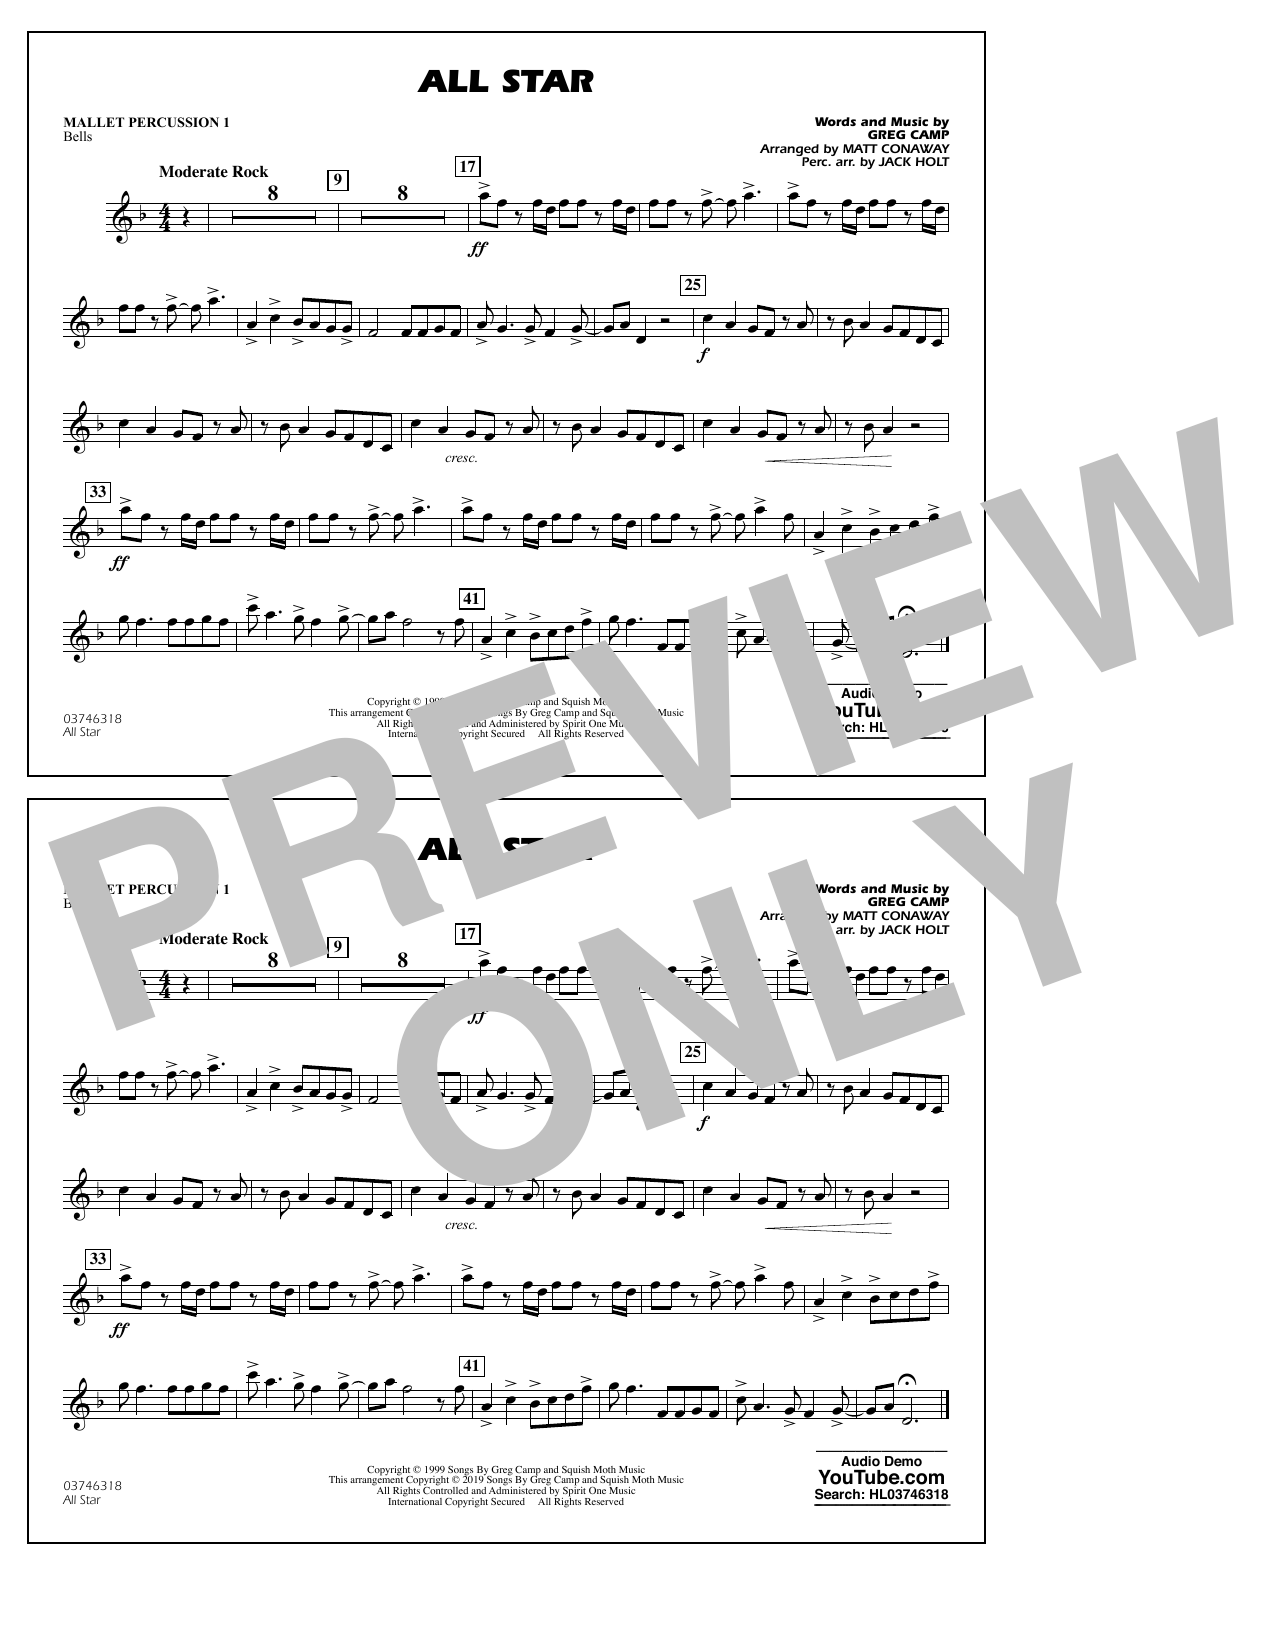 All Star (arr. Matt Conaway) - Mallet Percussion 1 (Marching Band)